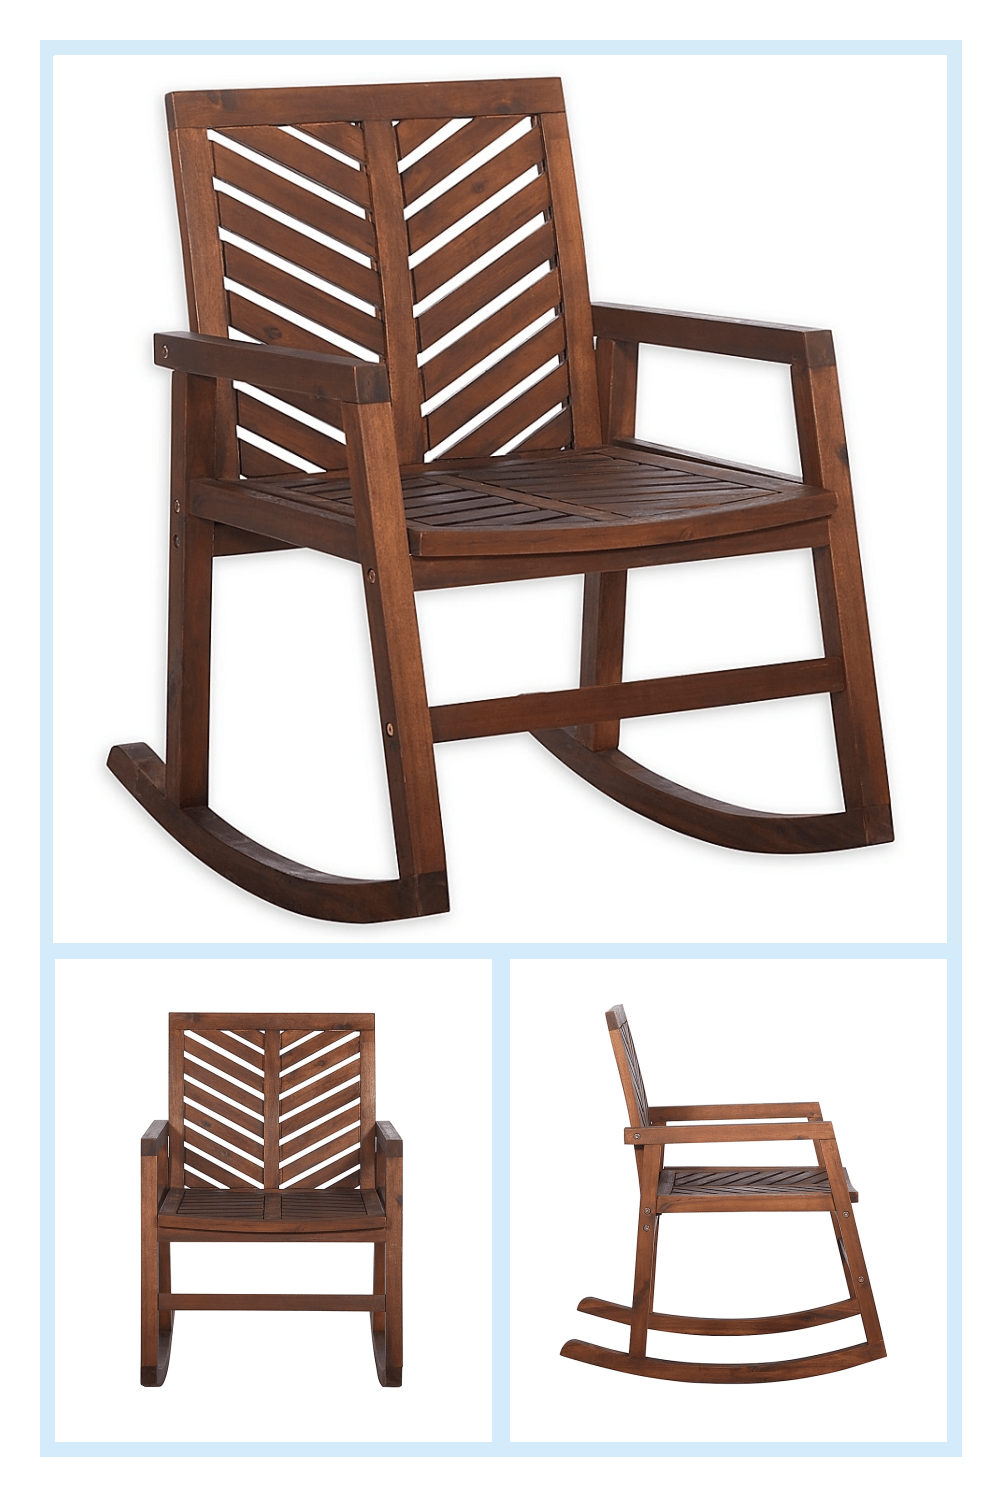 möbel Forest Gate Olive Acacia Wood Outdoor Rocking Chair